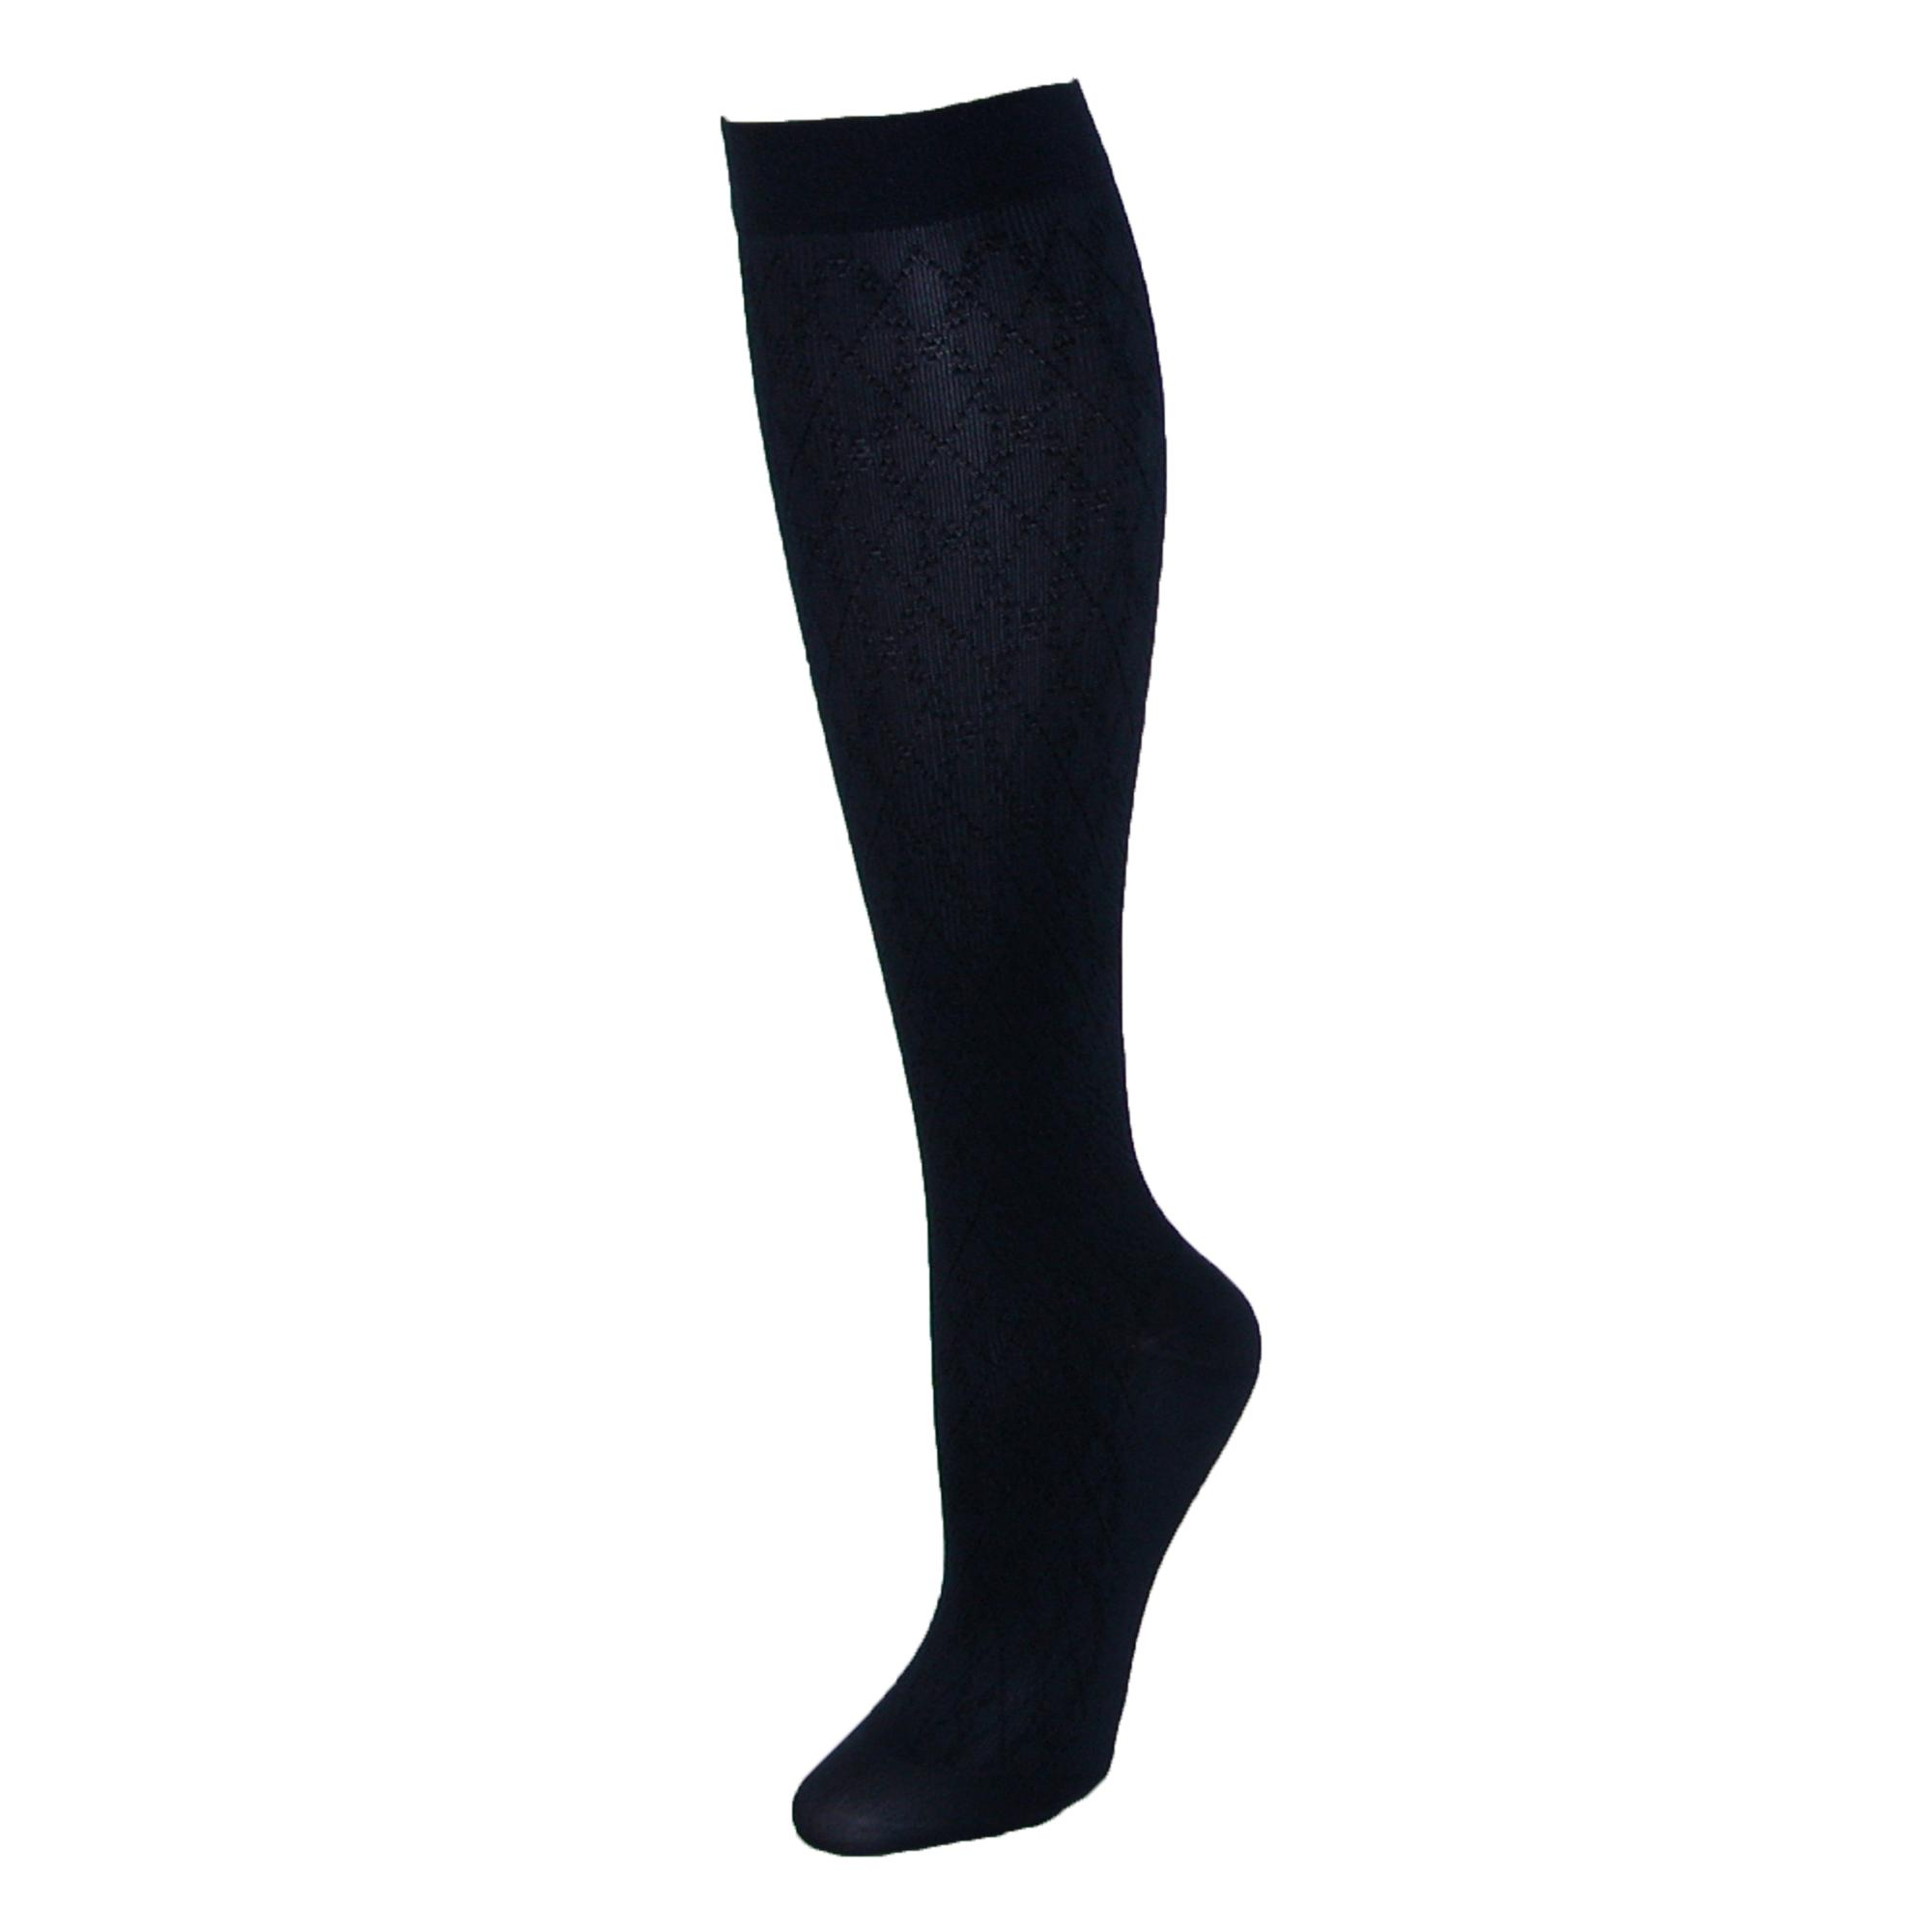 Jefferies Socks Womens Compression Dress Sock With Diamond Pattern